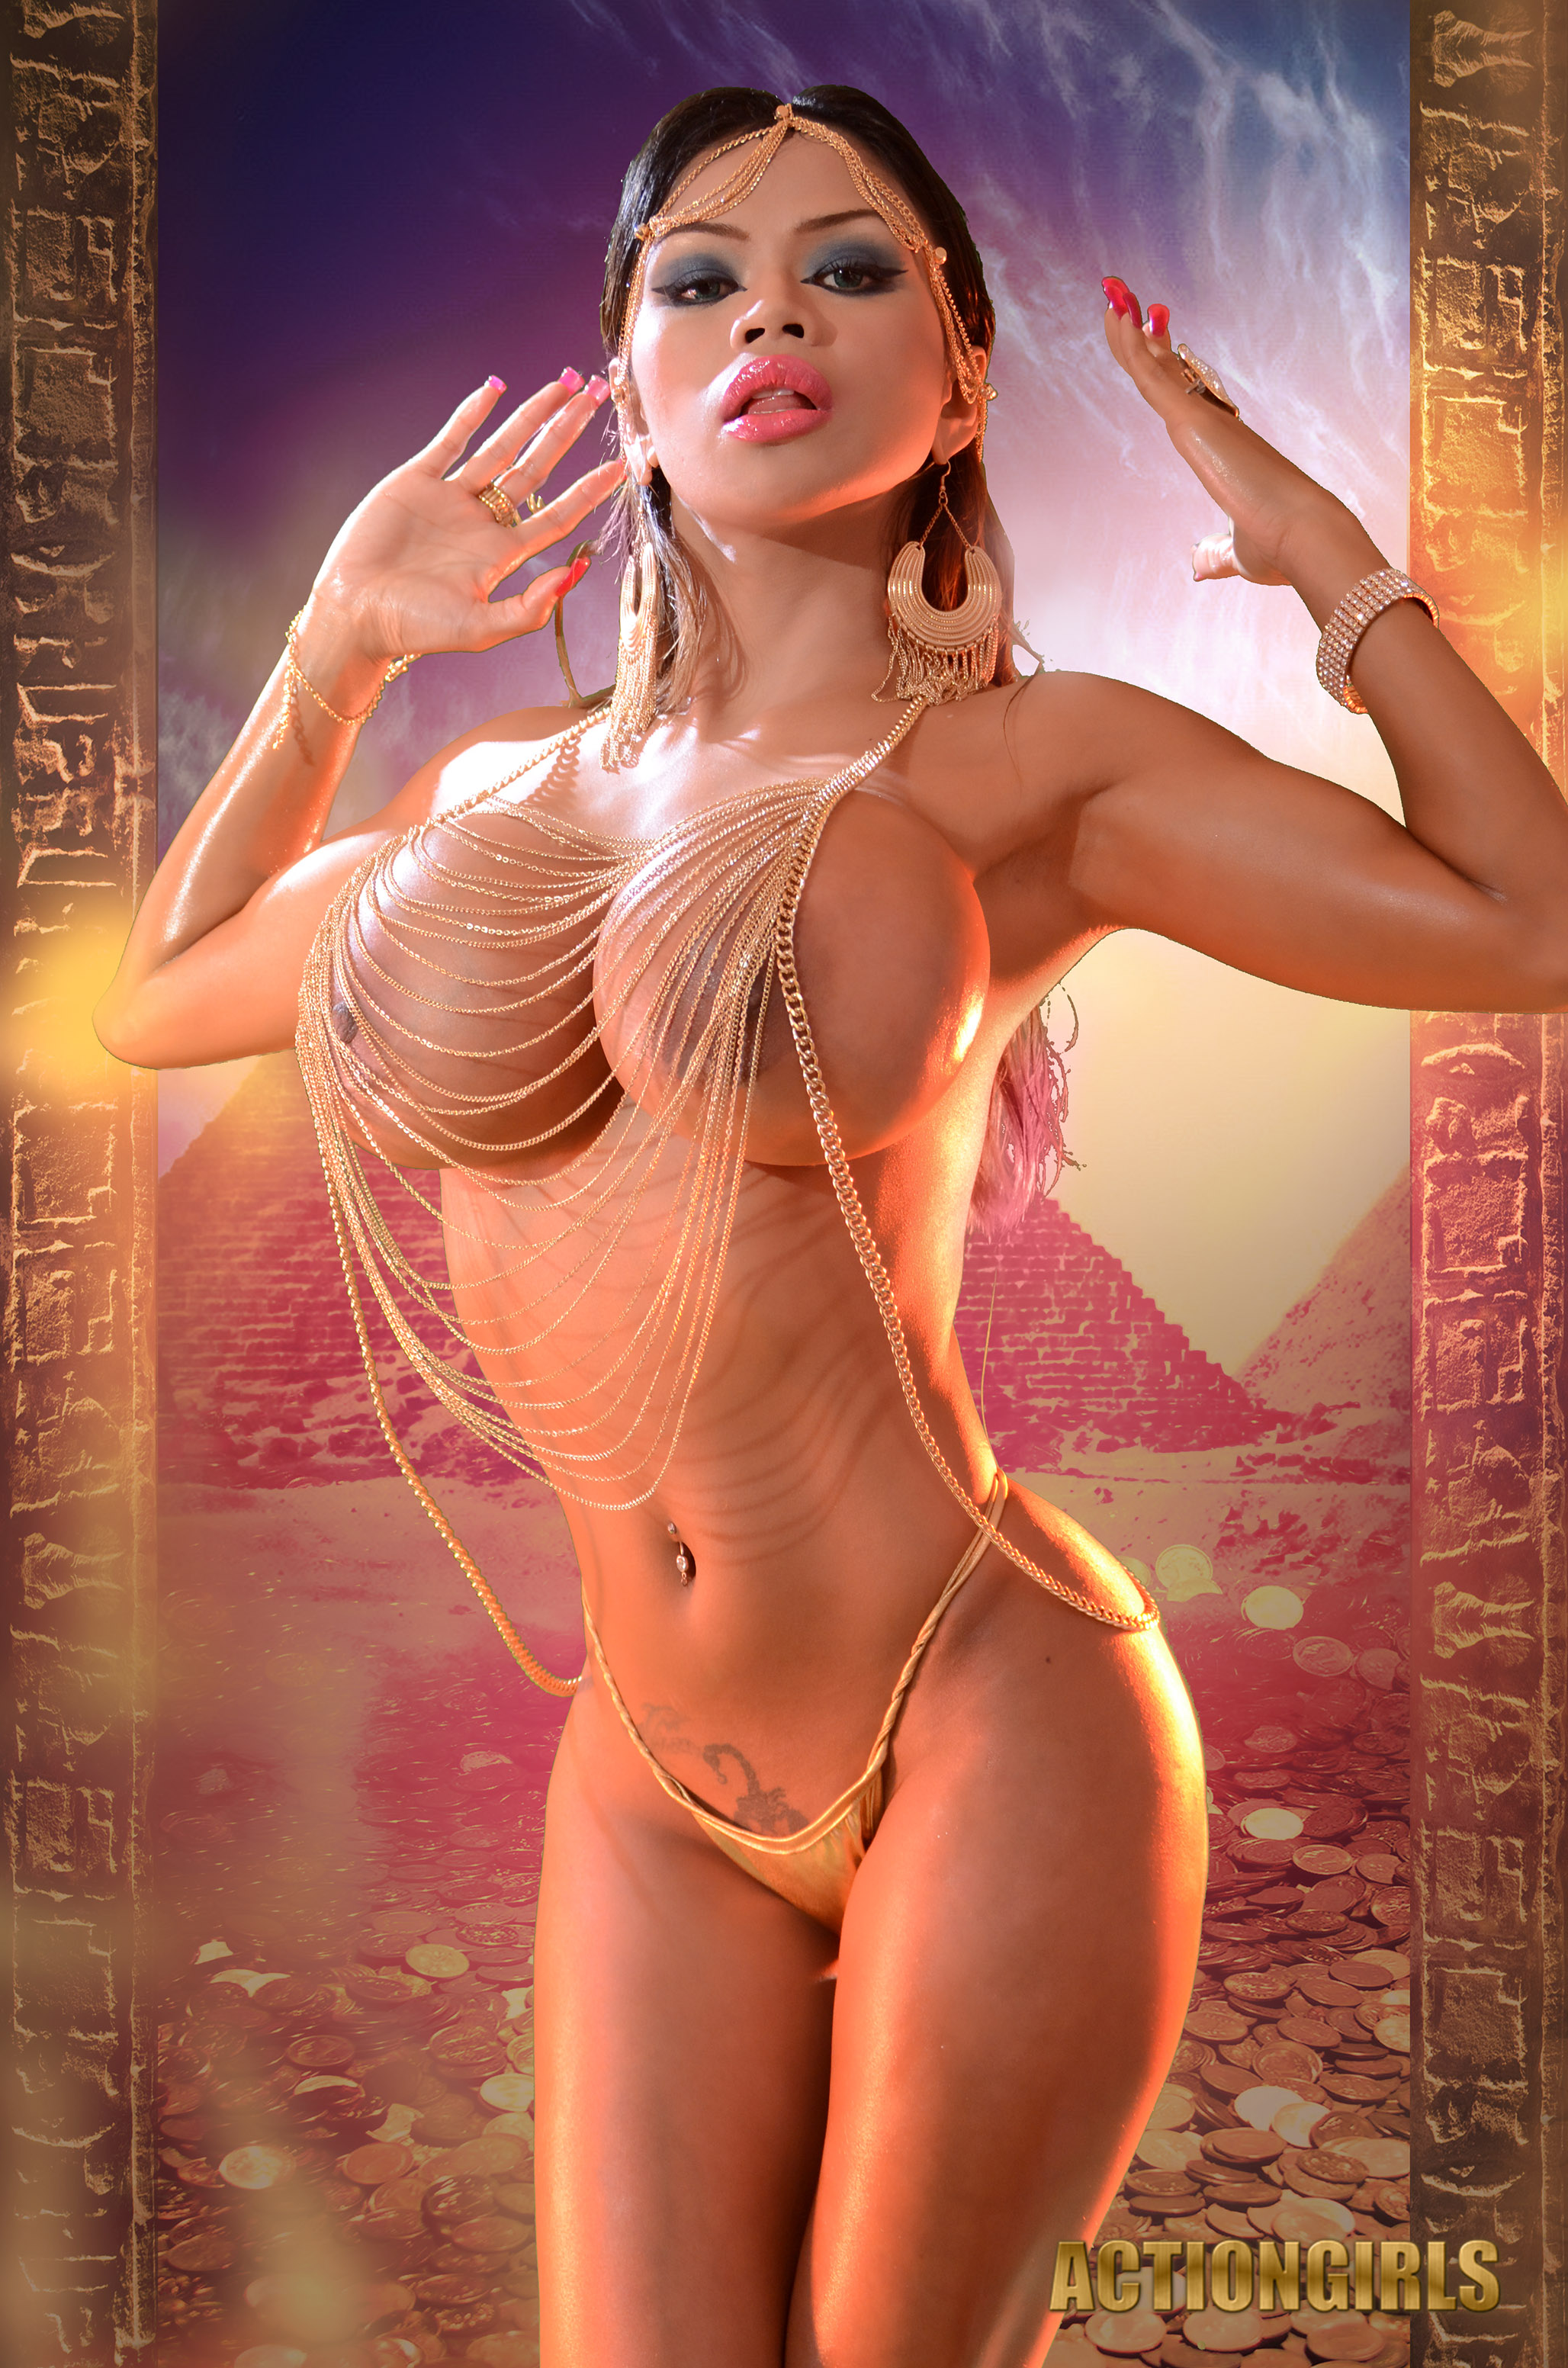 from Judson naked egyptian girls action